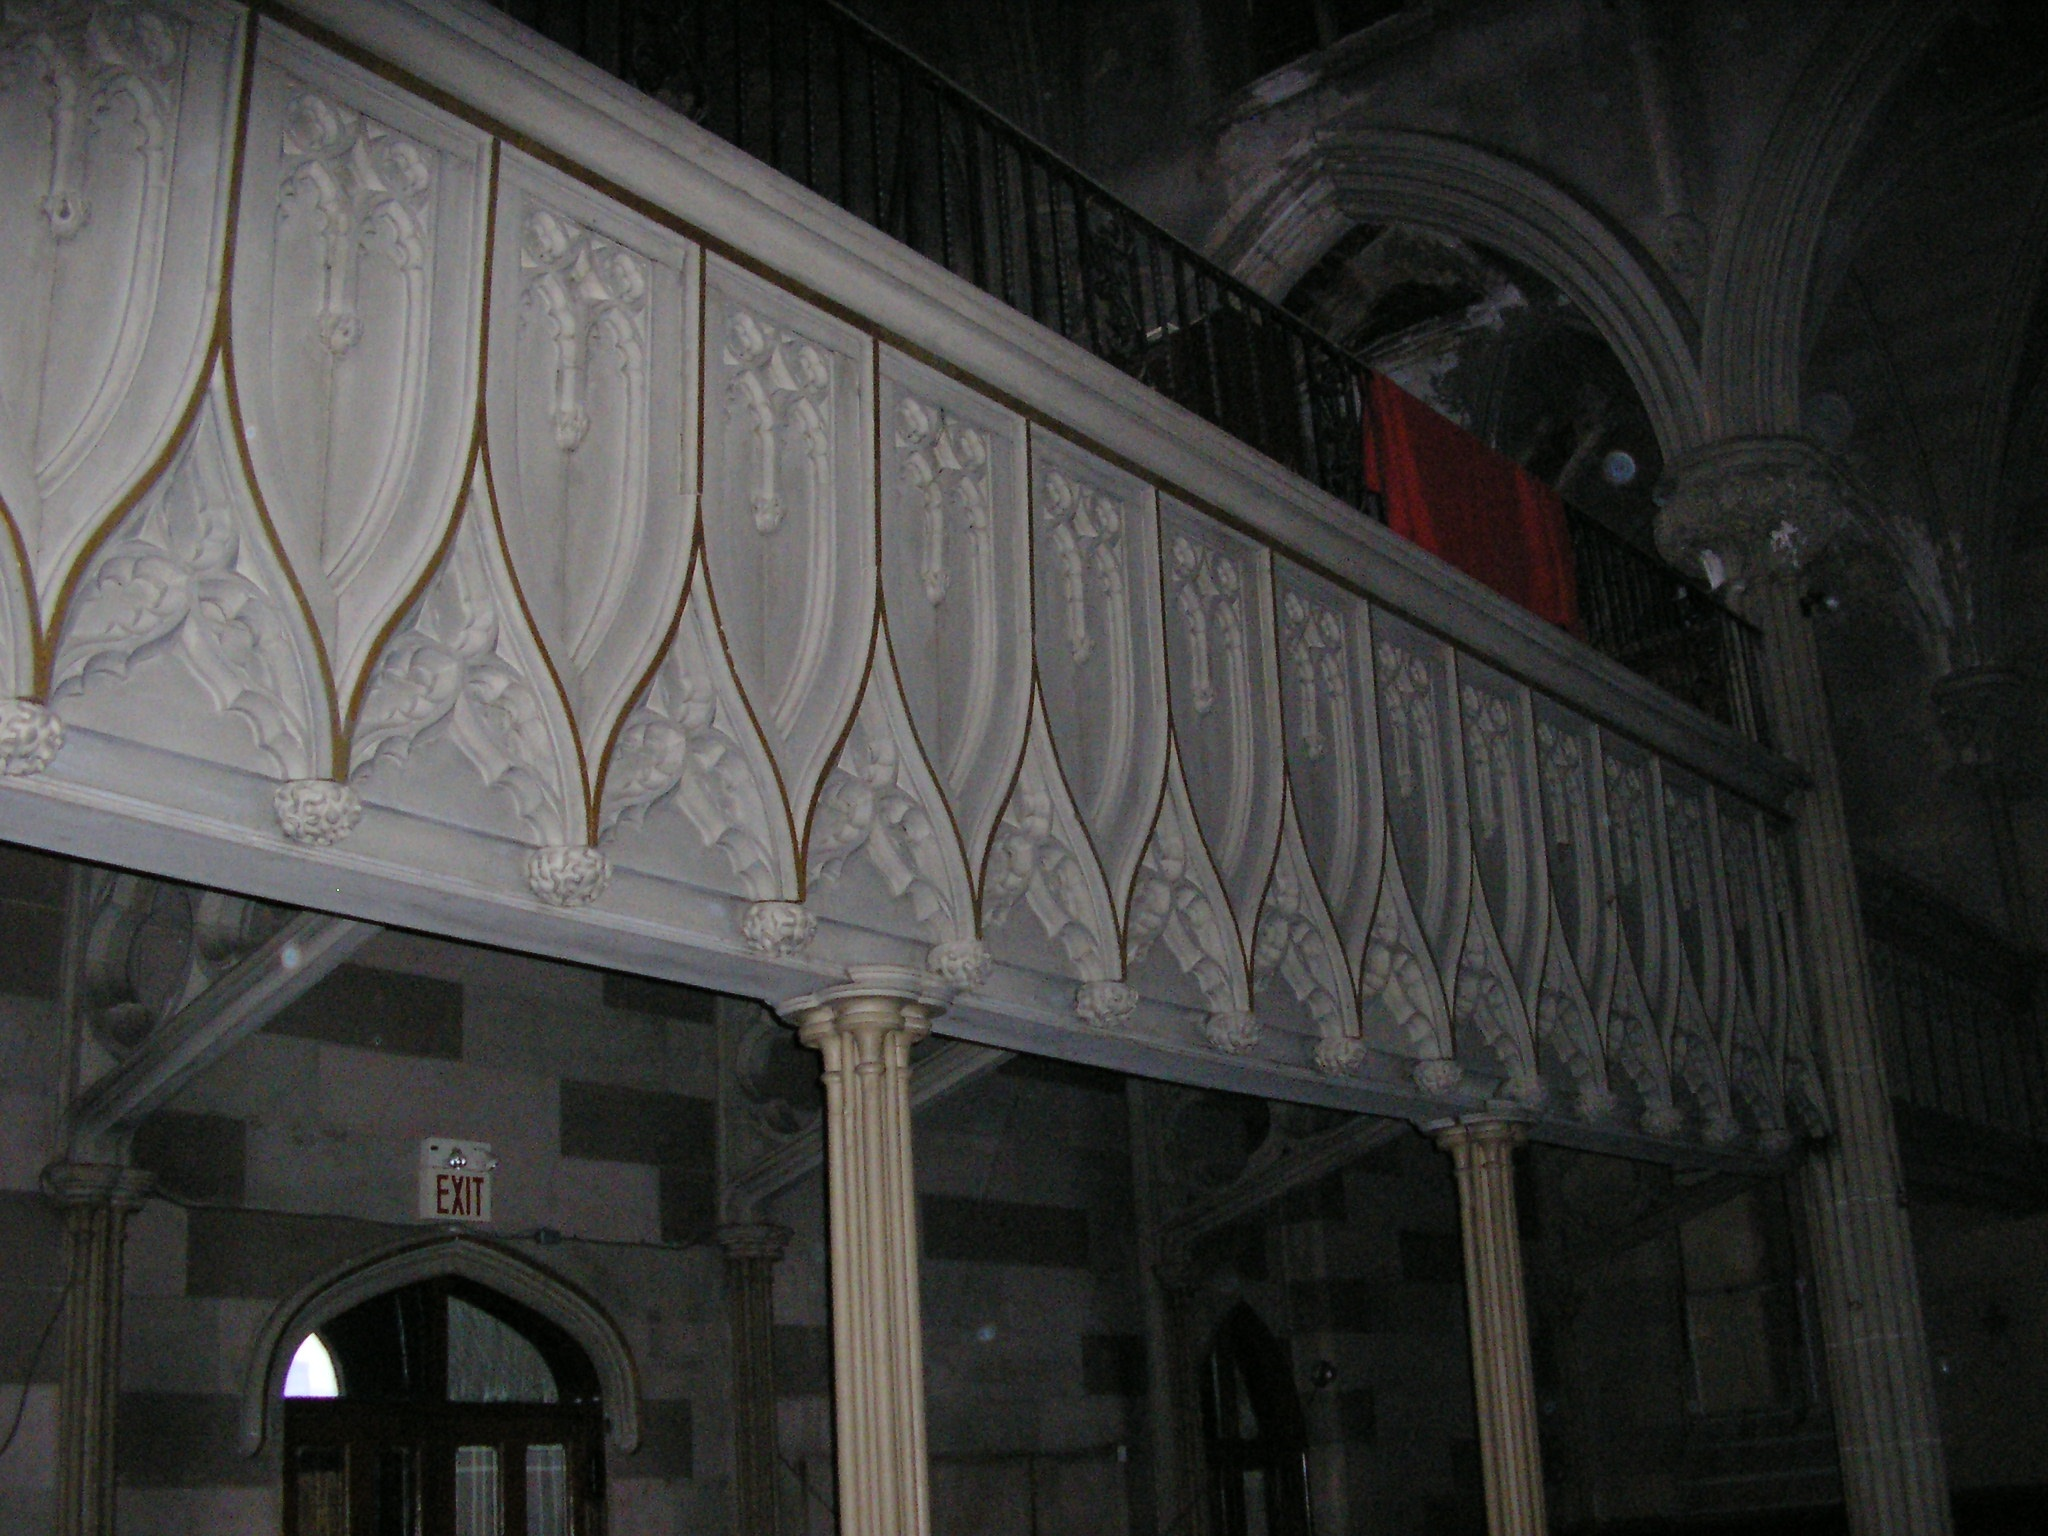 The interior decorative plaster was intact in 2007.